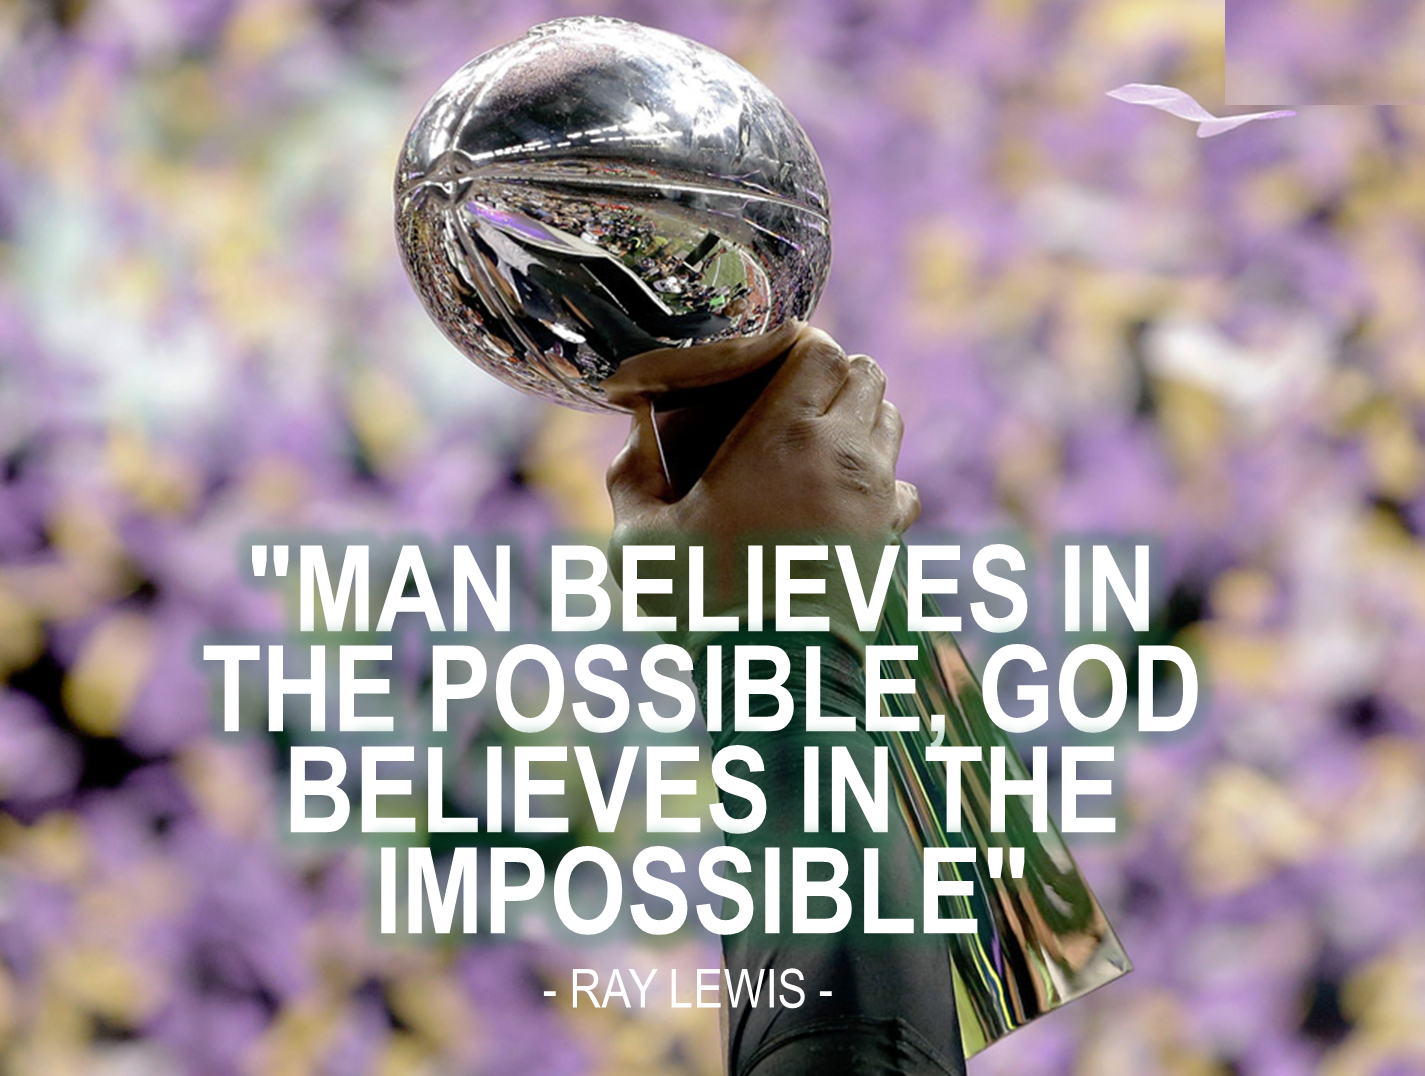 Ray Lewis Inspirational Quotes Quotesgram: Ray Lewis Quotes Motivational Quotes. QuotesGram